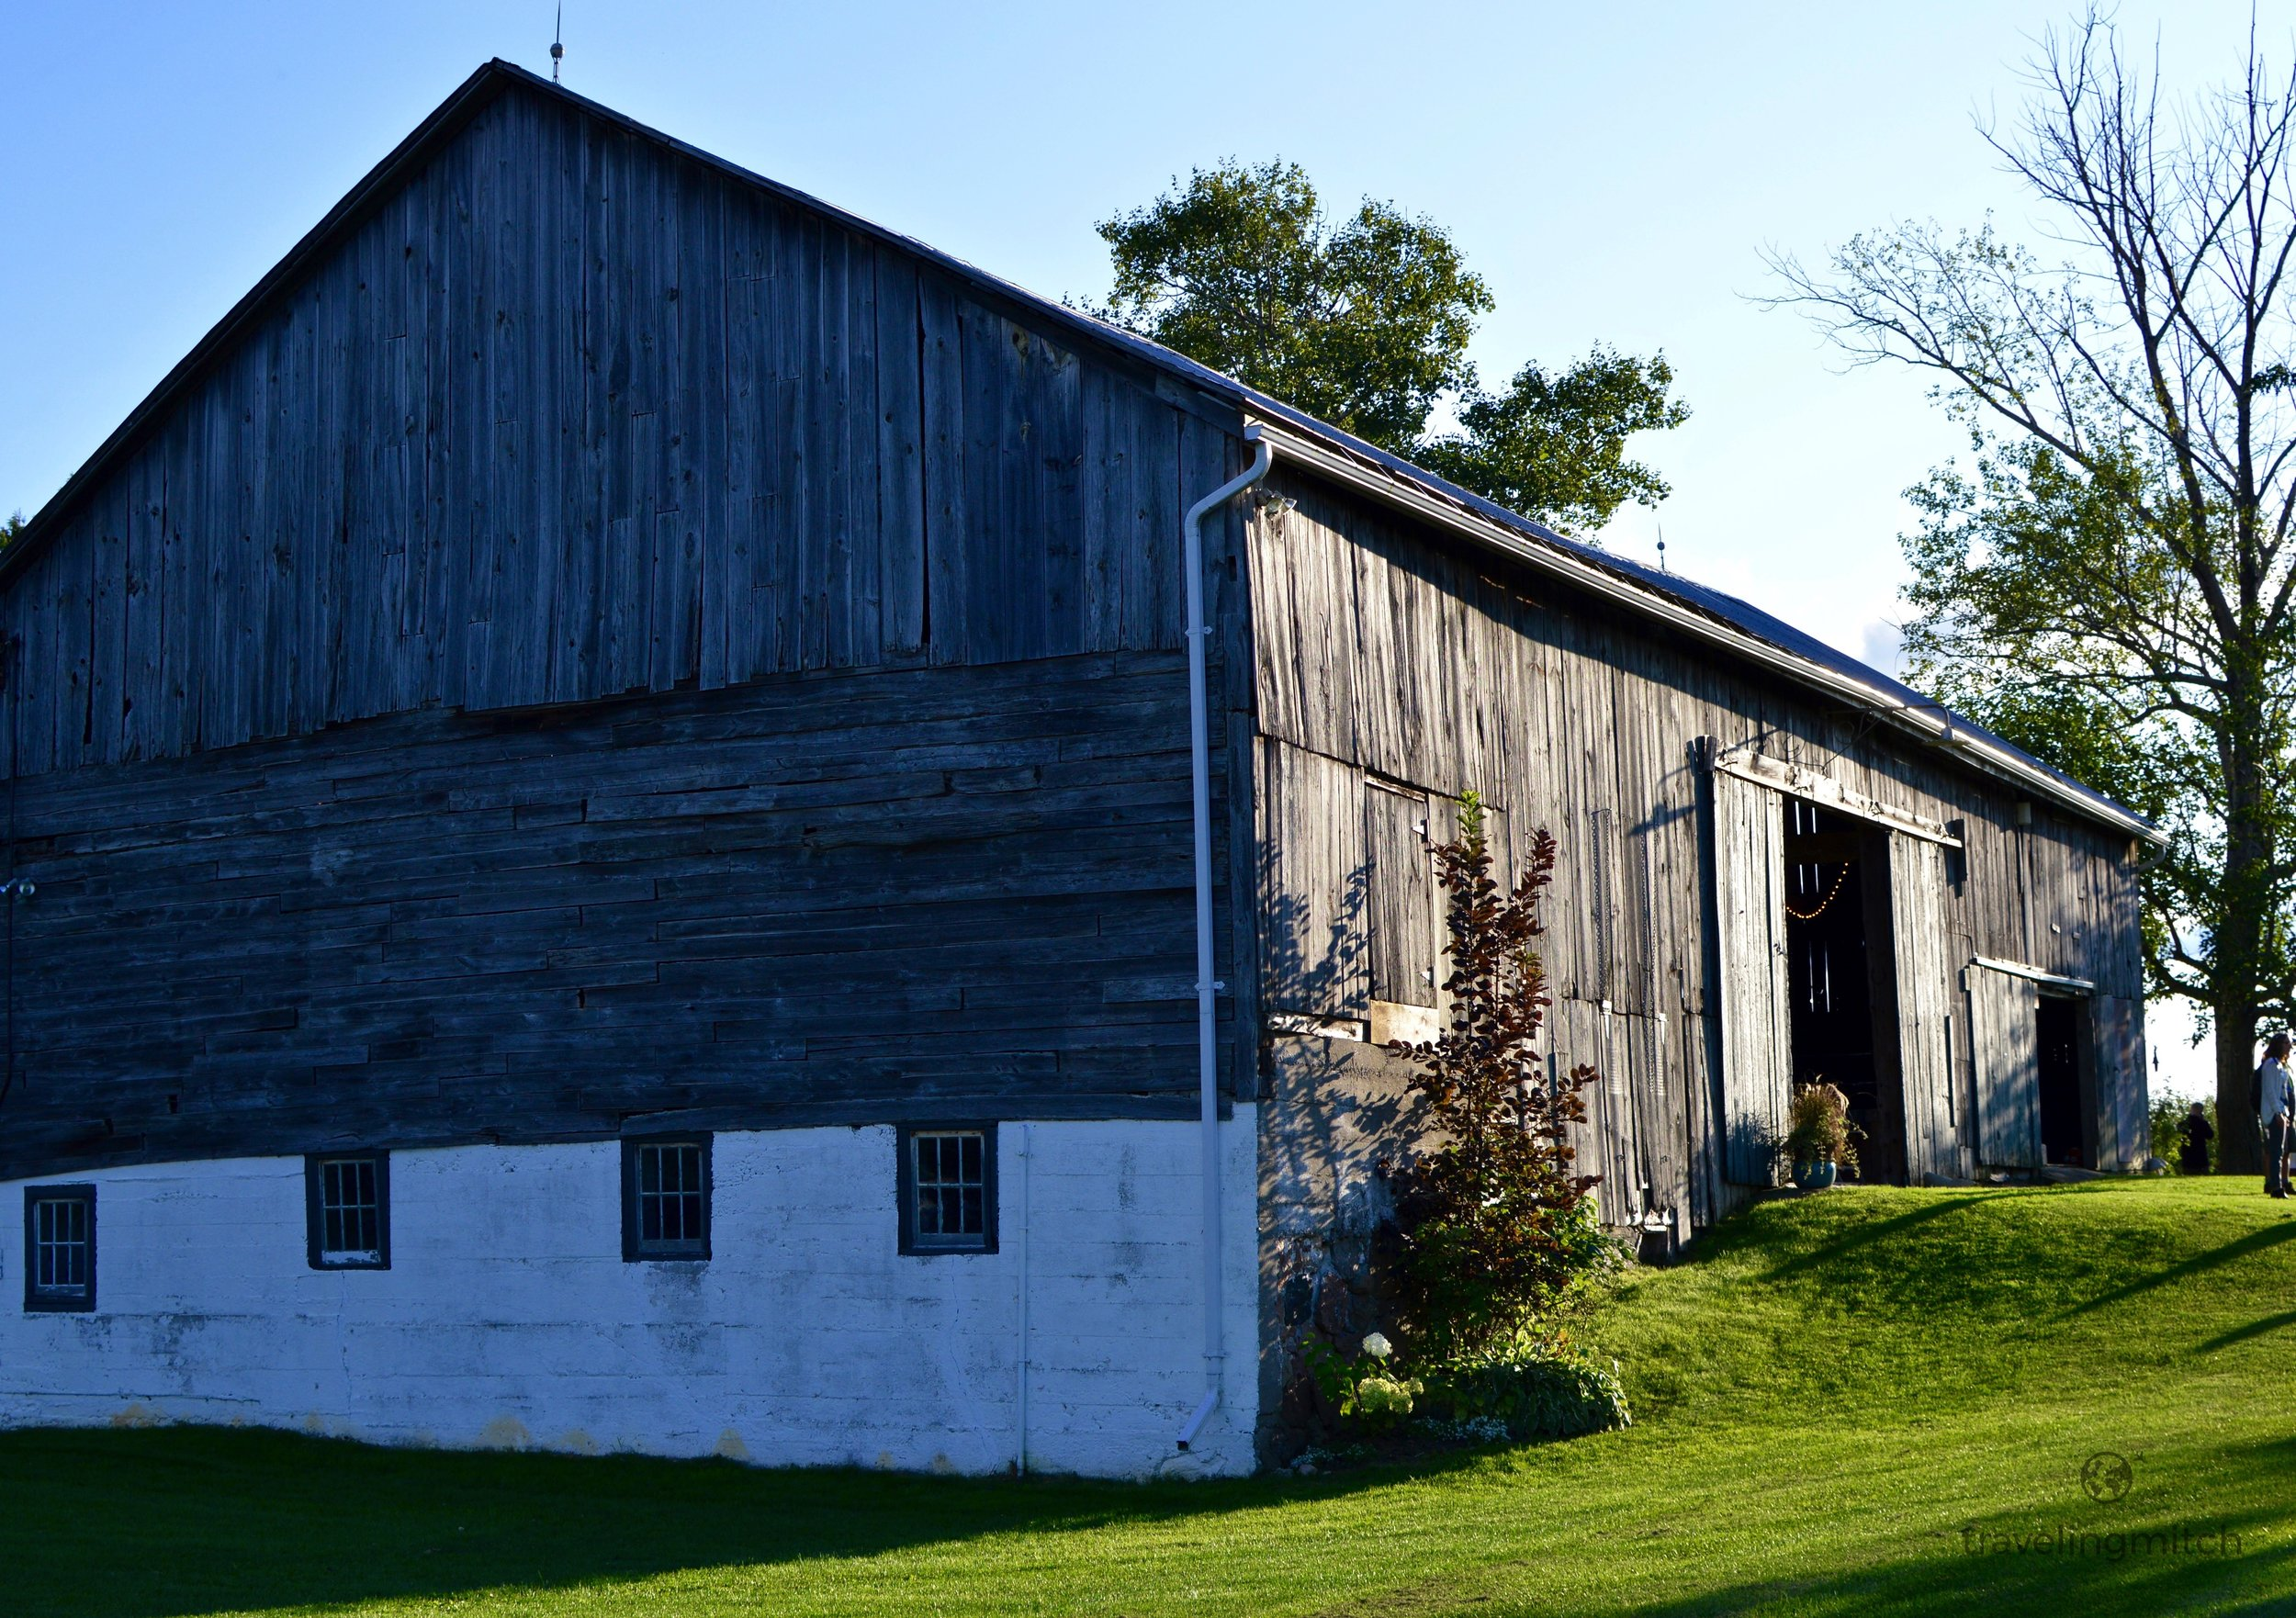 The barn on Hayfield Farm in Orono, Ontario